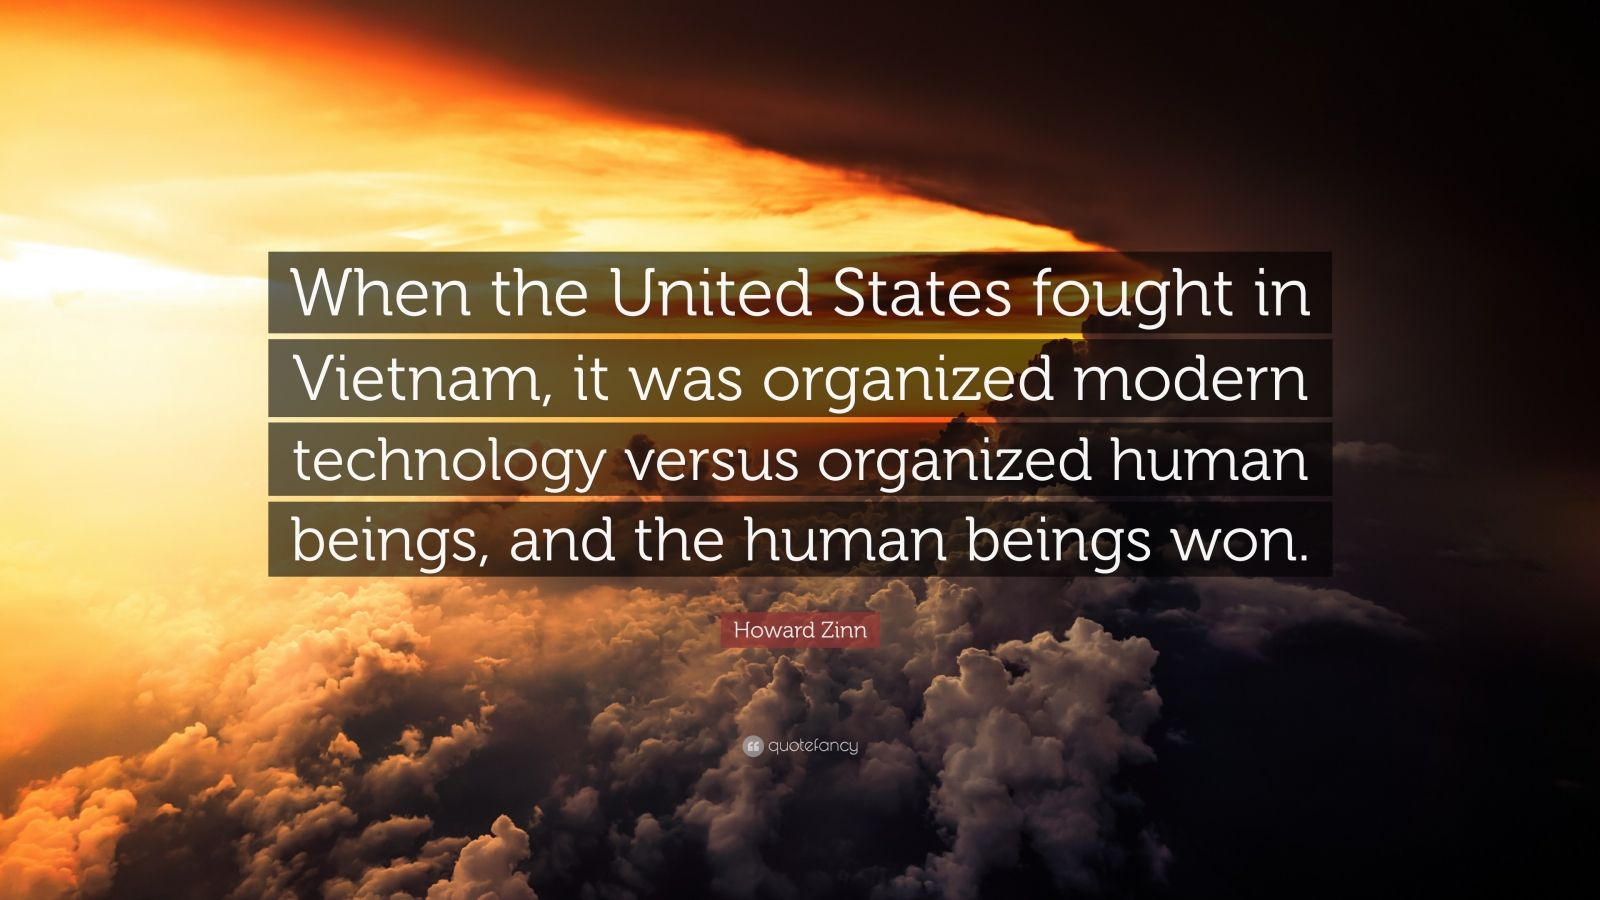 """Howard Zinn Quote: """"When the United States fought in Vietnam, it was organized modern technology versus organized human beings, and the human beings won."""""""